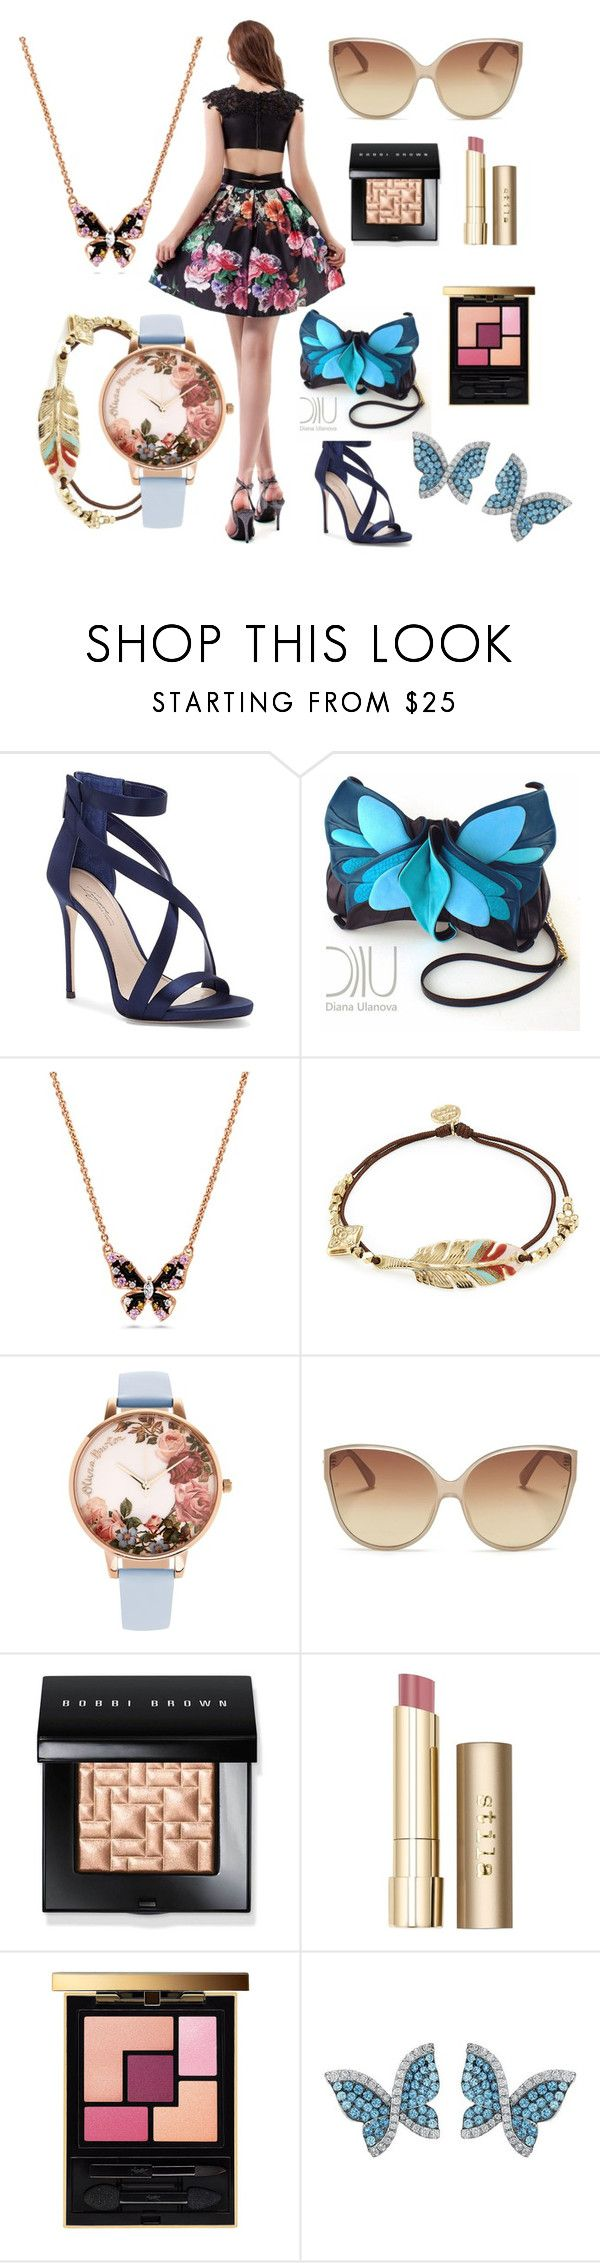 """""""CocoMelody Special Occasion Dresses No. 28"""" by cocomelodydress ❤ liked on Polyvore featuring Imagine by Vince Camuto, Gas Bijoux, Olivia Burton, Linda Farrow, Bobbi Brown Cosmetics, Stila, Yves Saint Laurent and Swarovski"""